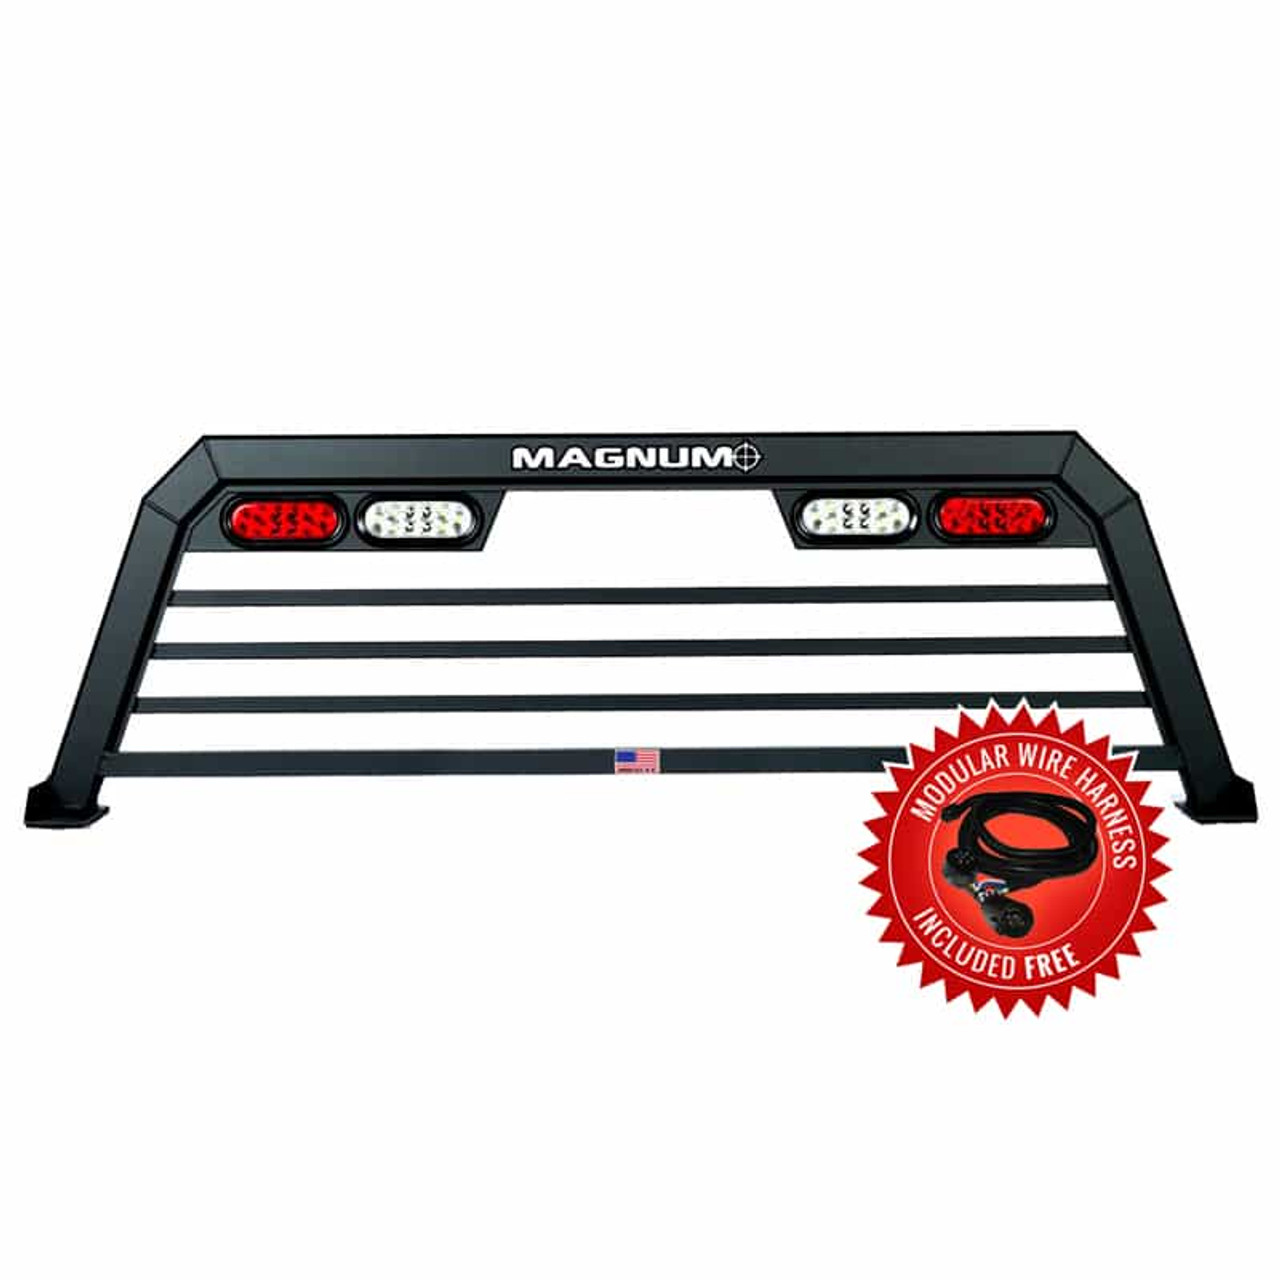 Truck Rack with Lights - Low Pro